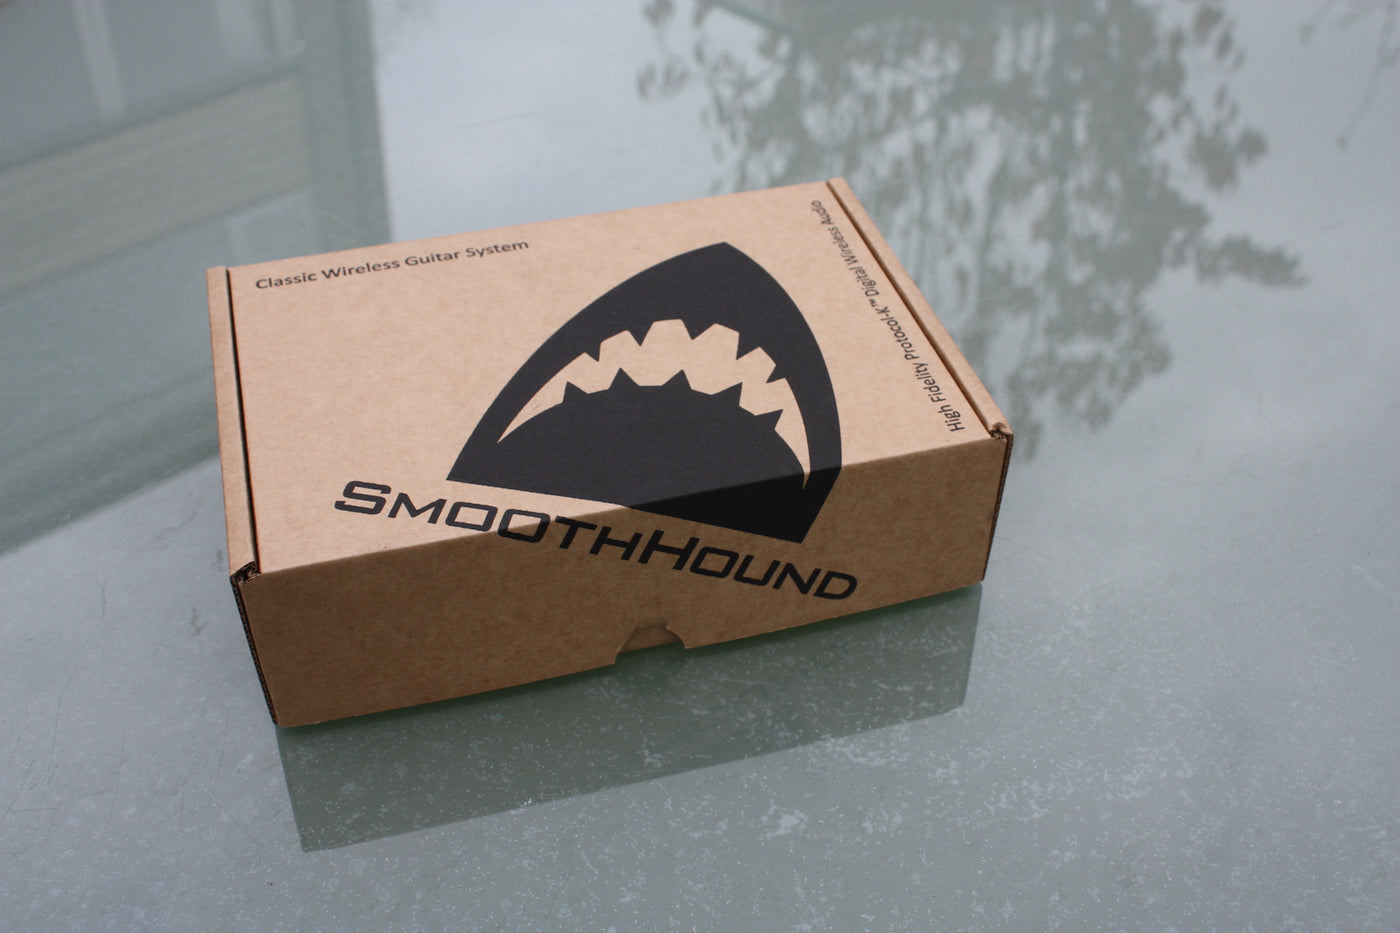 Smooth Hound Wireless Guitar System Designed And Made In